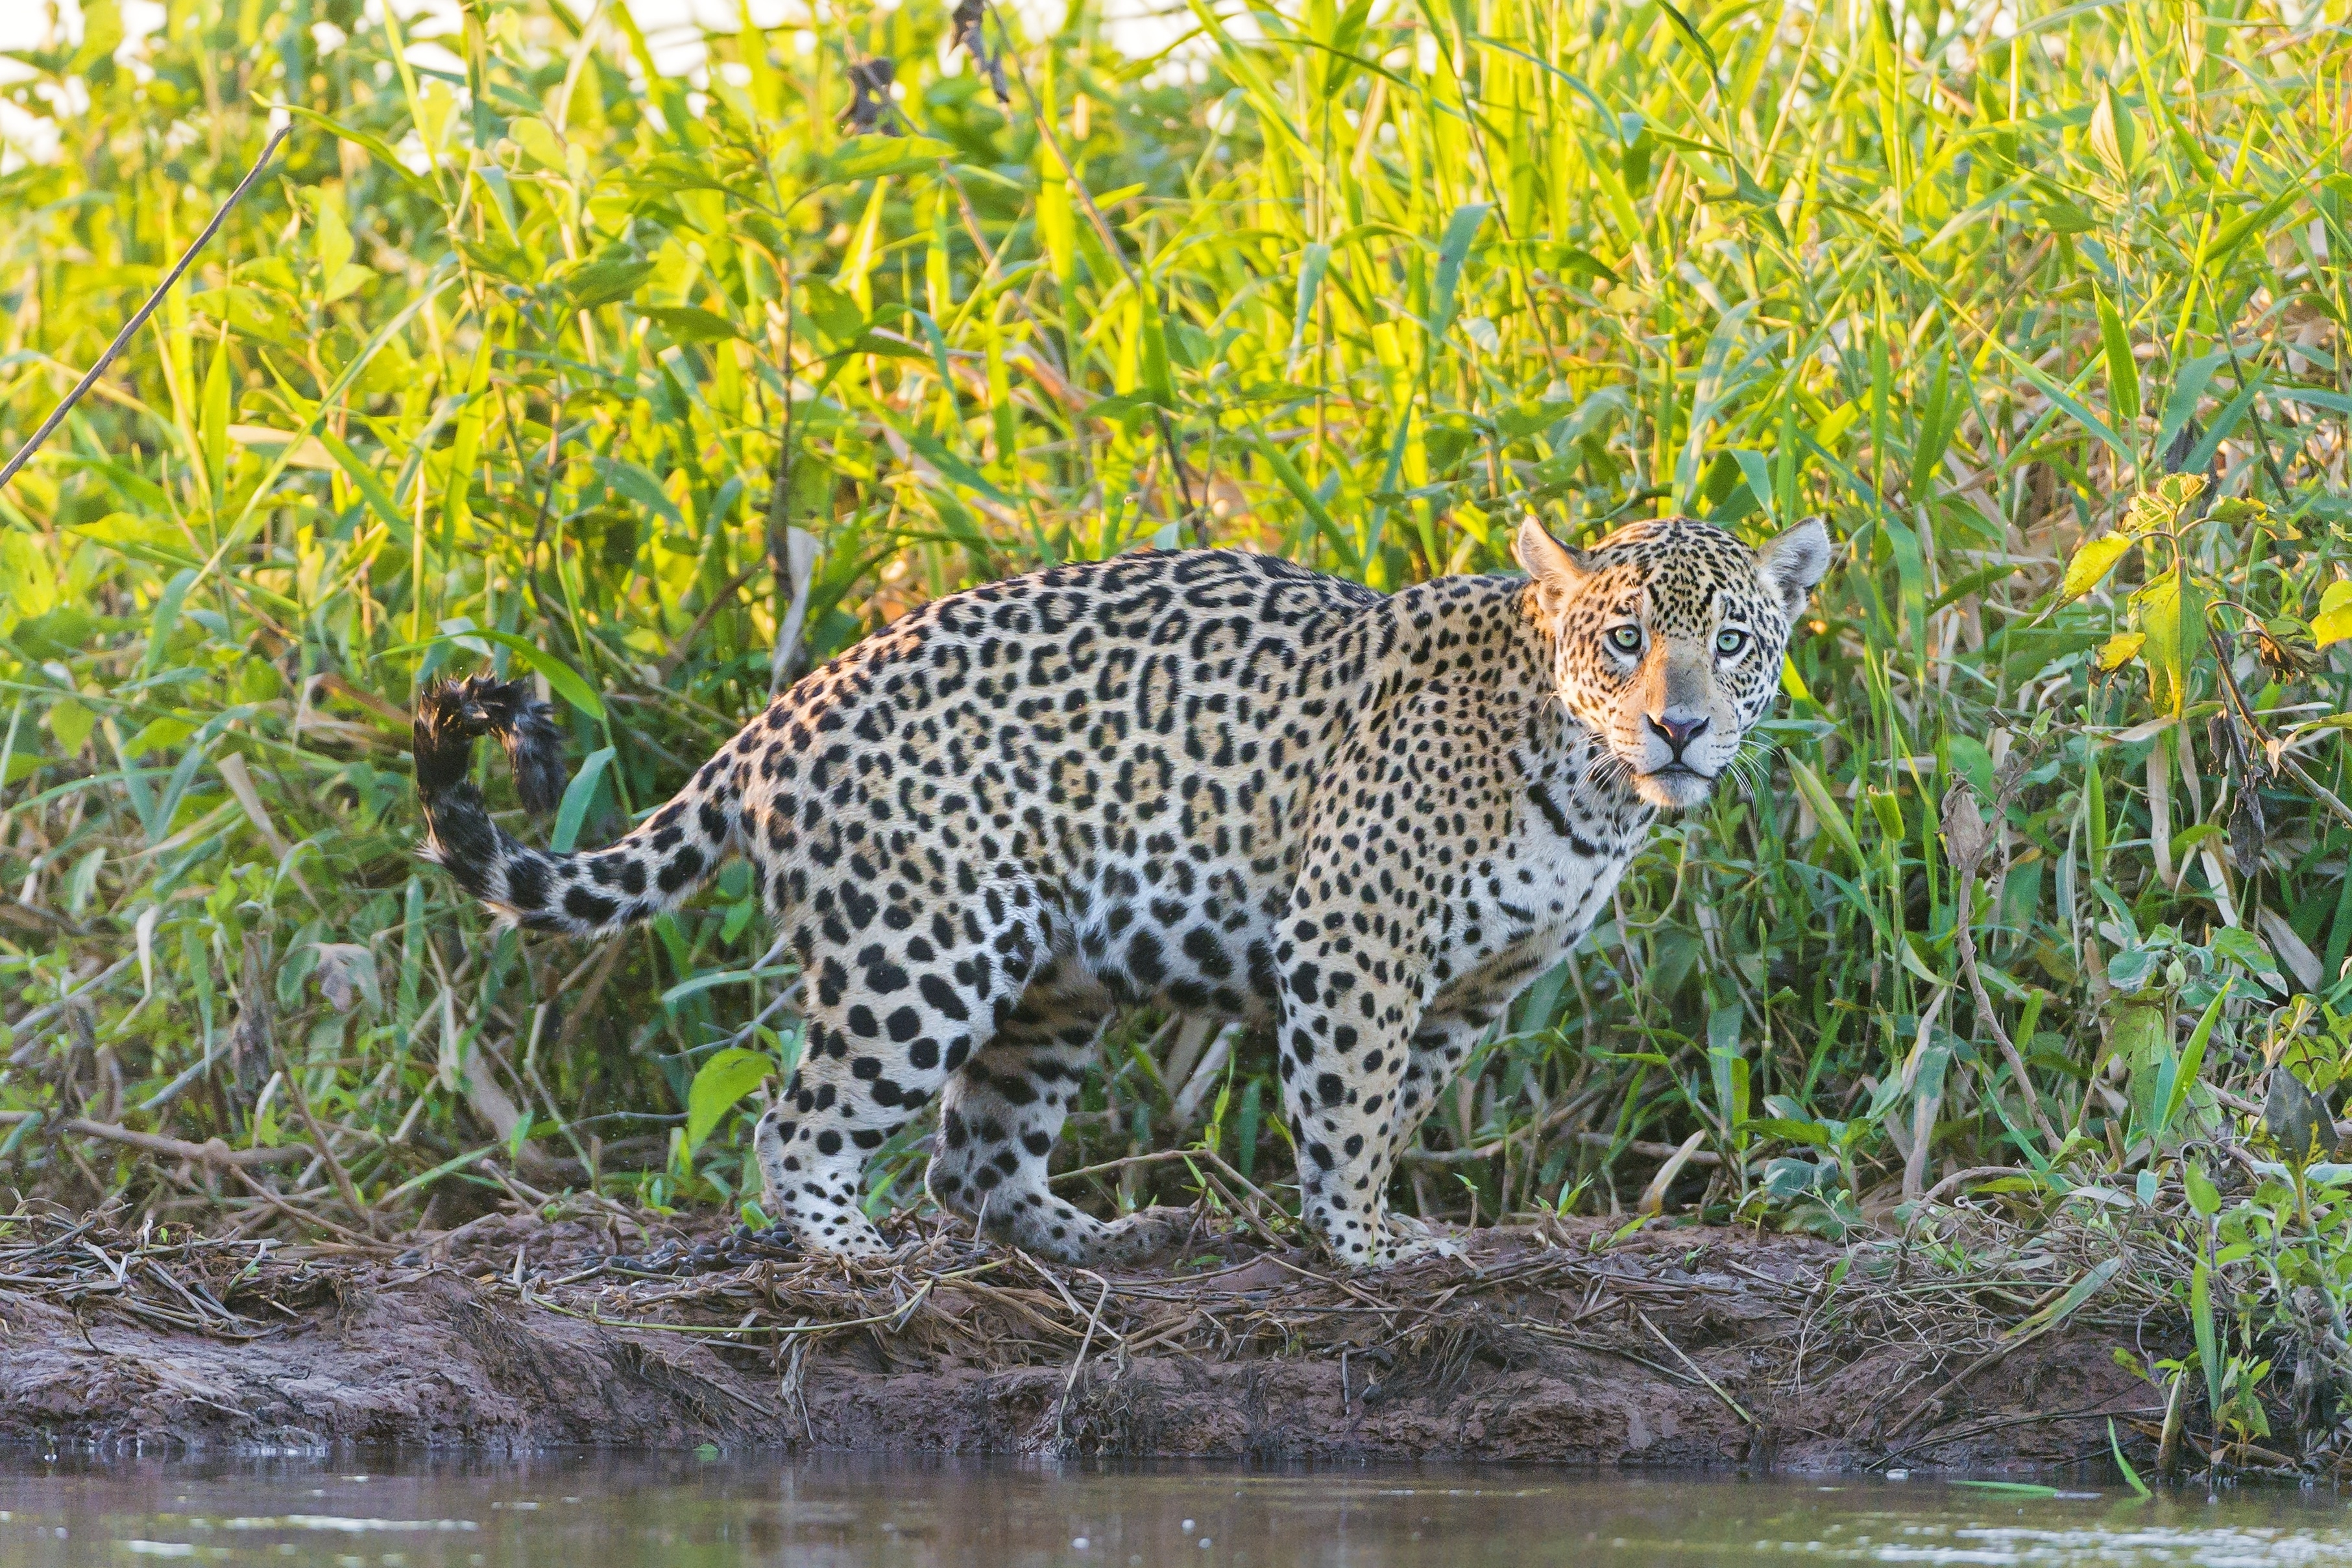 120181 download wallpaper Animals, Jaguar, Grass, Stroll, Predator screensavers and pictures for free